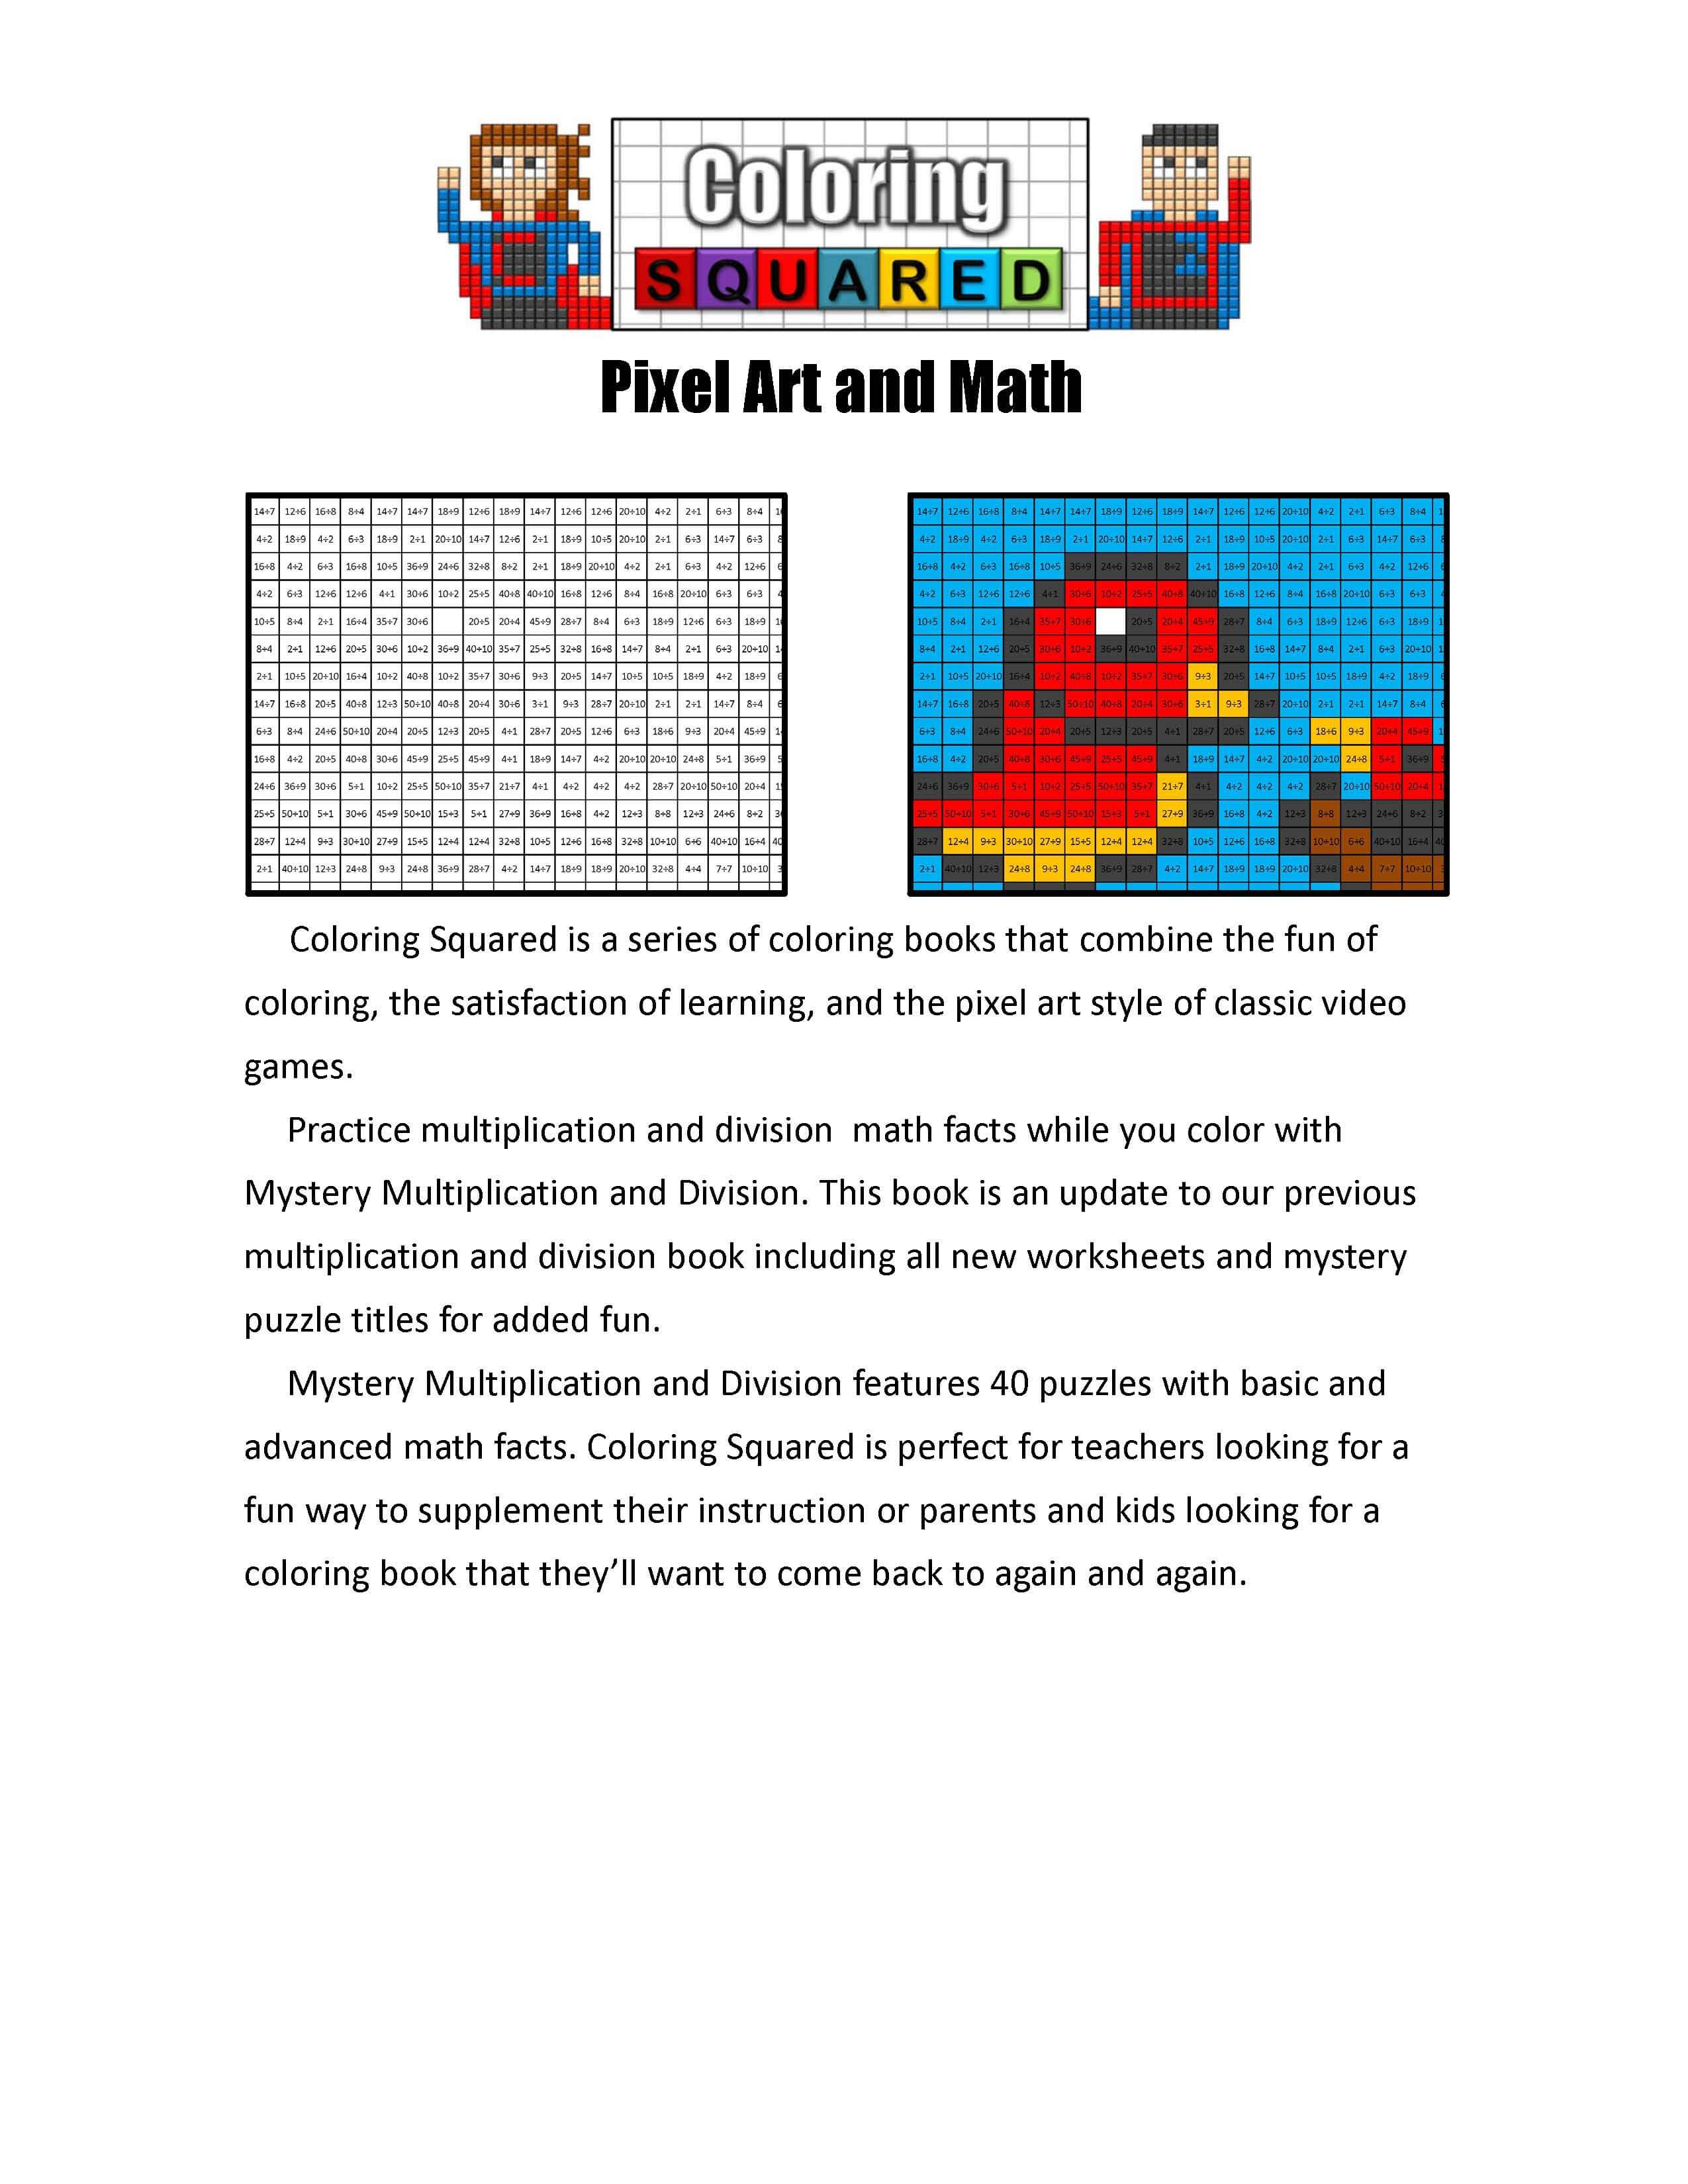 Mystery Multiplication and Division - Coloring Squared